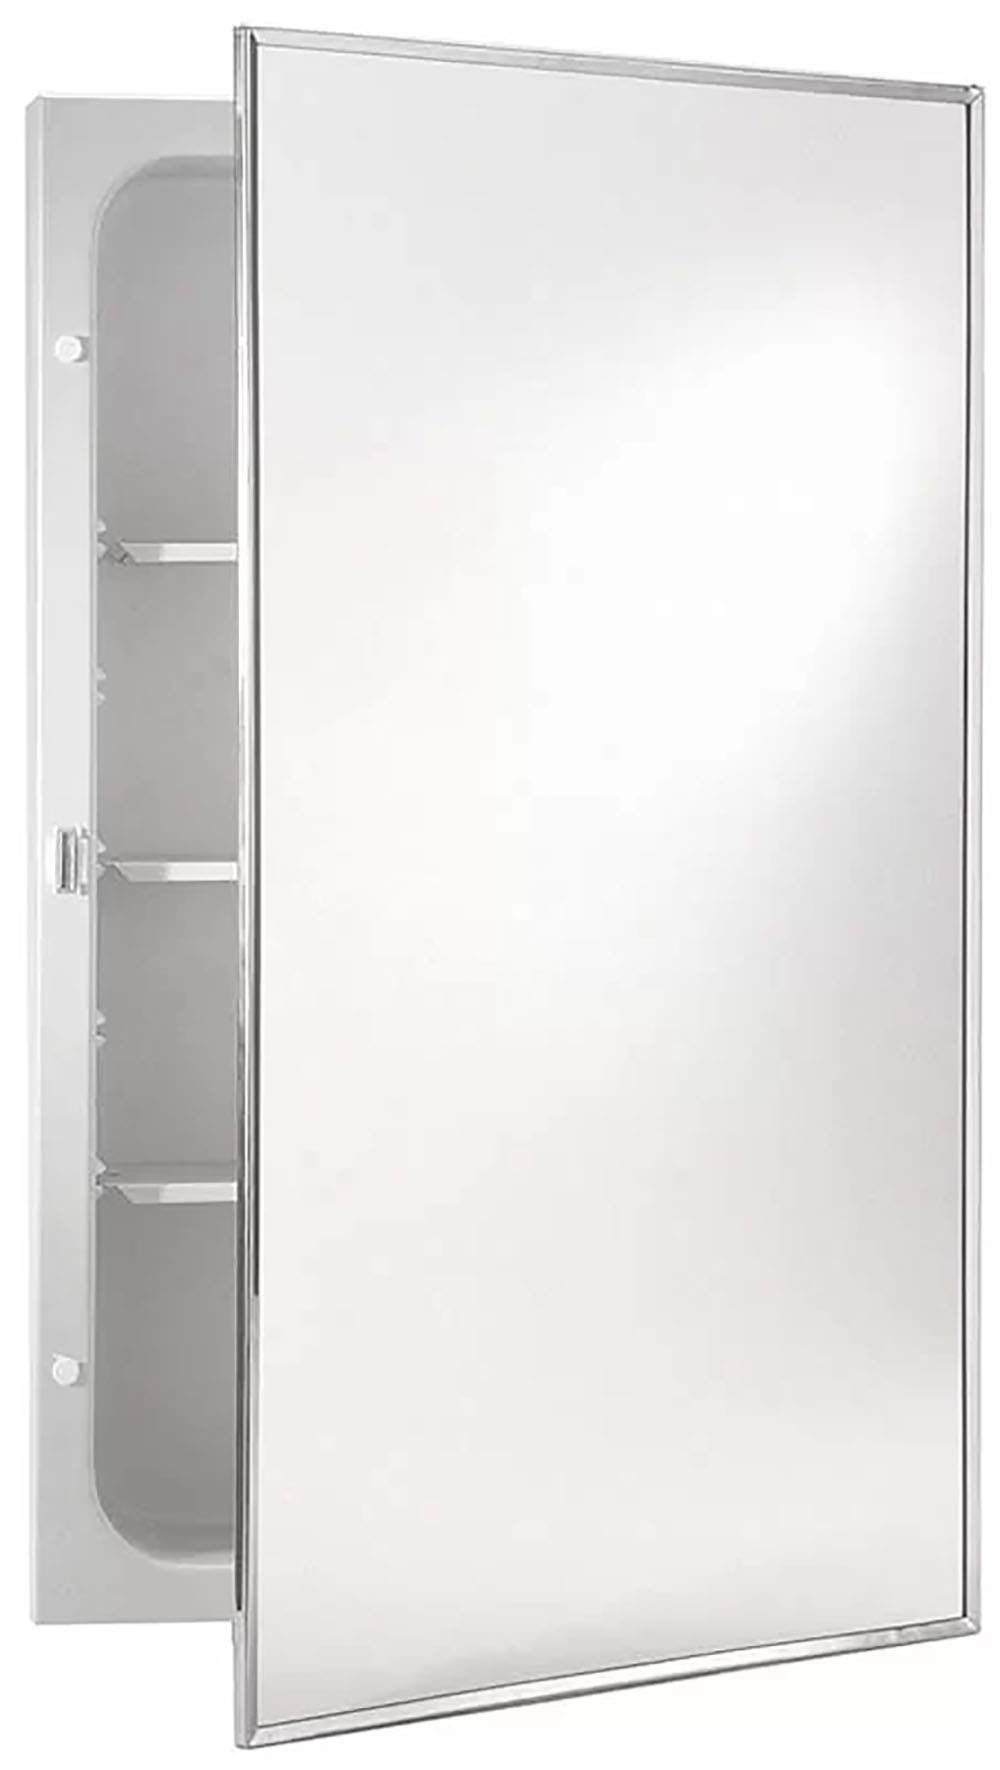 Jensen 407ADJ Basic Styleline Recessed Molded Medicine Cabinet - Mounting type: recessed with wall opening dimensions measuring  14-Inch by 18-Inch by 2-1/2-Inch Overall size: 16-Inch by 20-Inch Easy to clean, one-piece, injection-molded polystyrene construction - shelves-cabinets, bathroom-fixtures-hardware, bathroom - 51jLd2zTBeL -